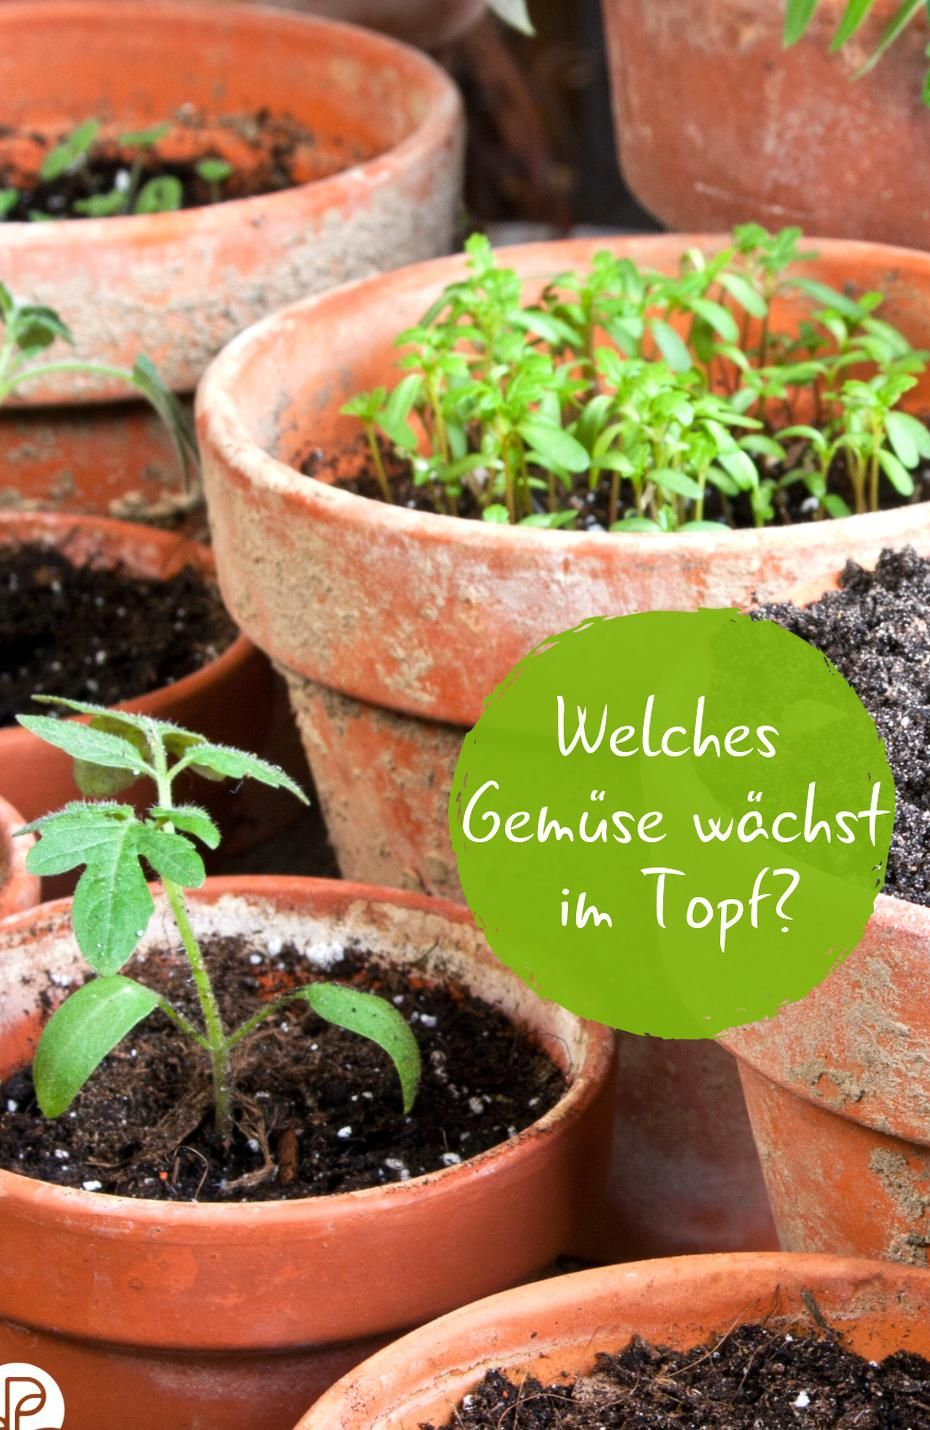 Welches Gemse Wchst Im Topf Gemse Anbauen Aber Kein Garten Kein Problem Wir Stellen Euch In 2020 Growing Vegetables Winter Vegetables Gardening Planting Vegetables